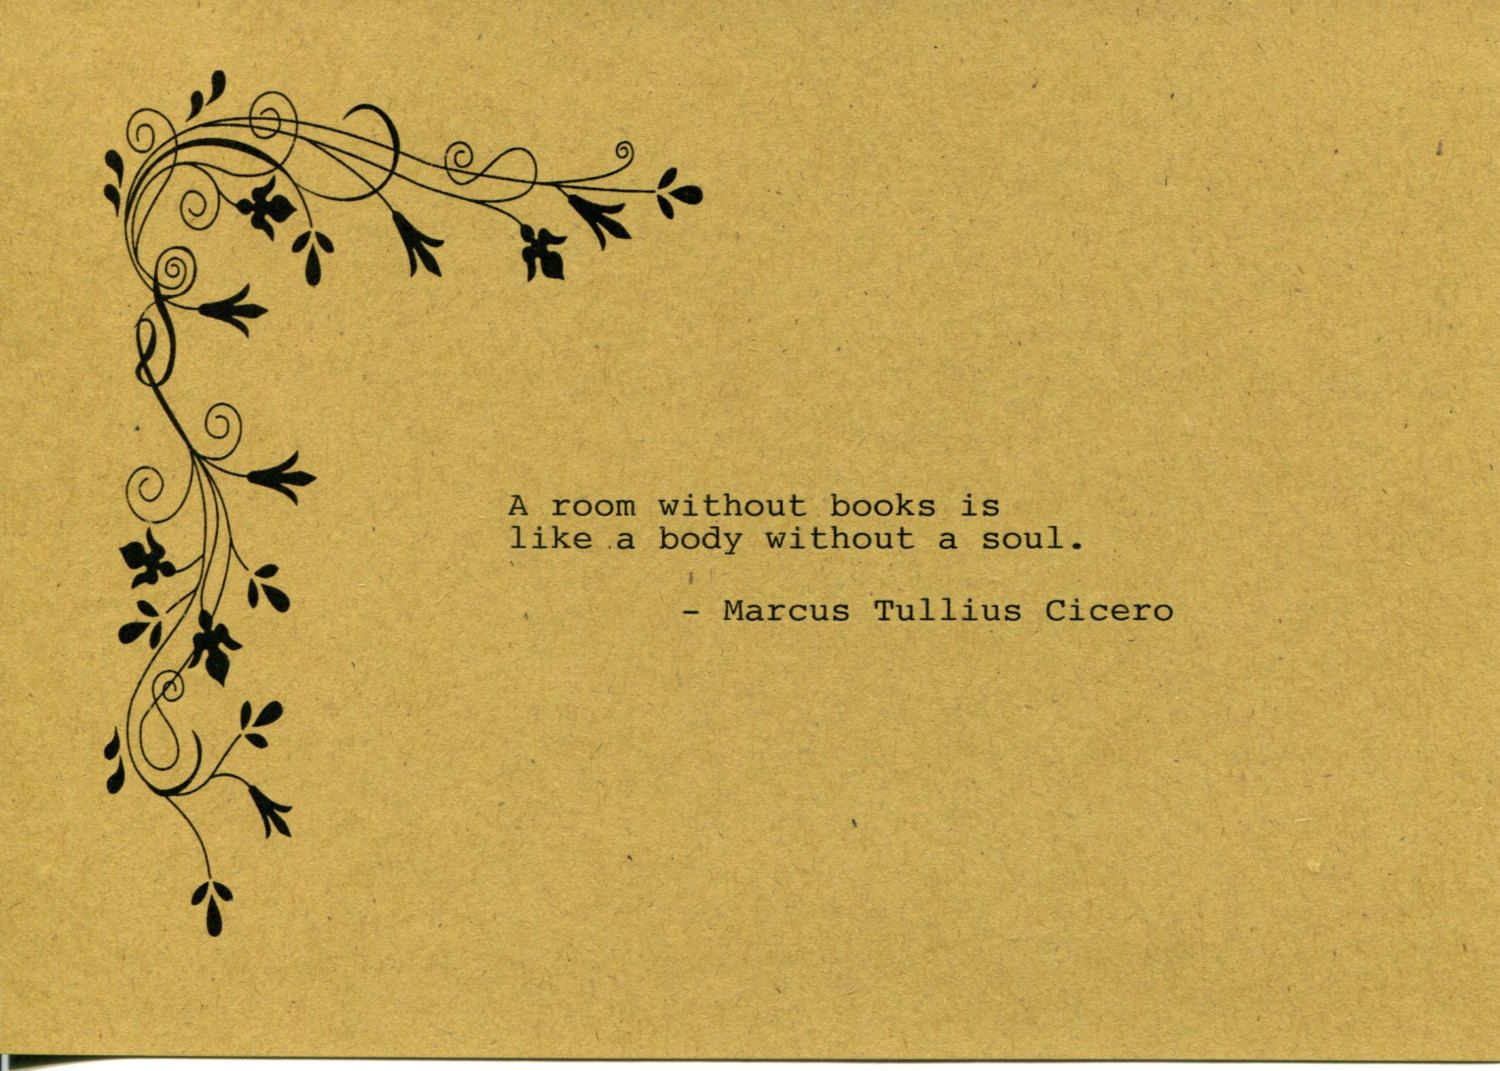 Marcus Tullius Cicero Quote Made on Typewriter Art Quote Wall Art ...